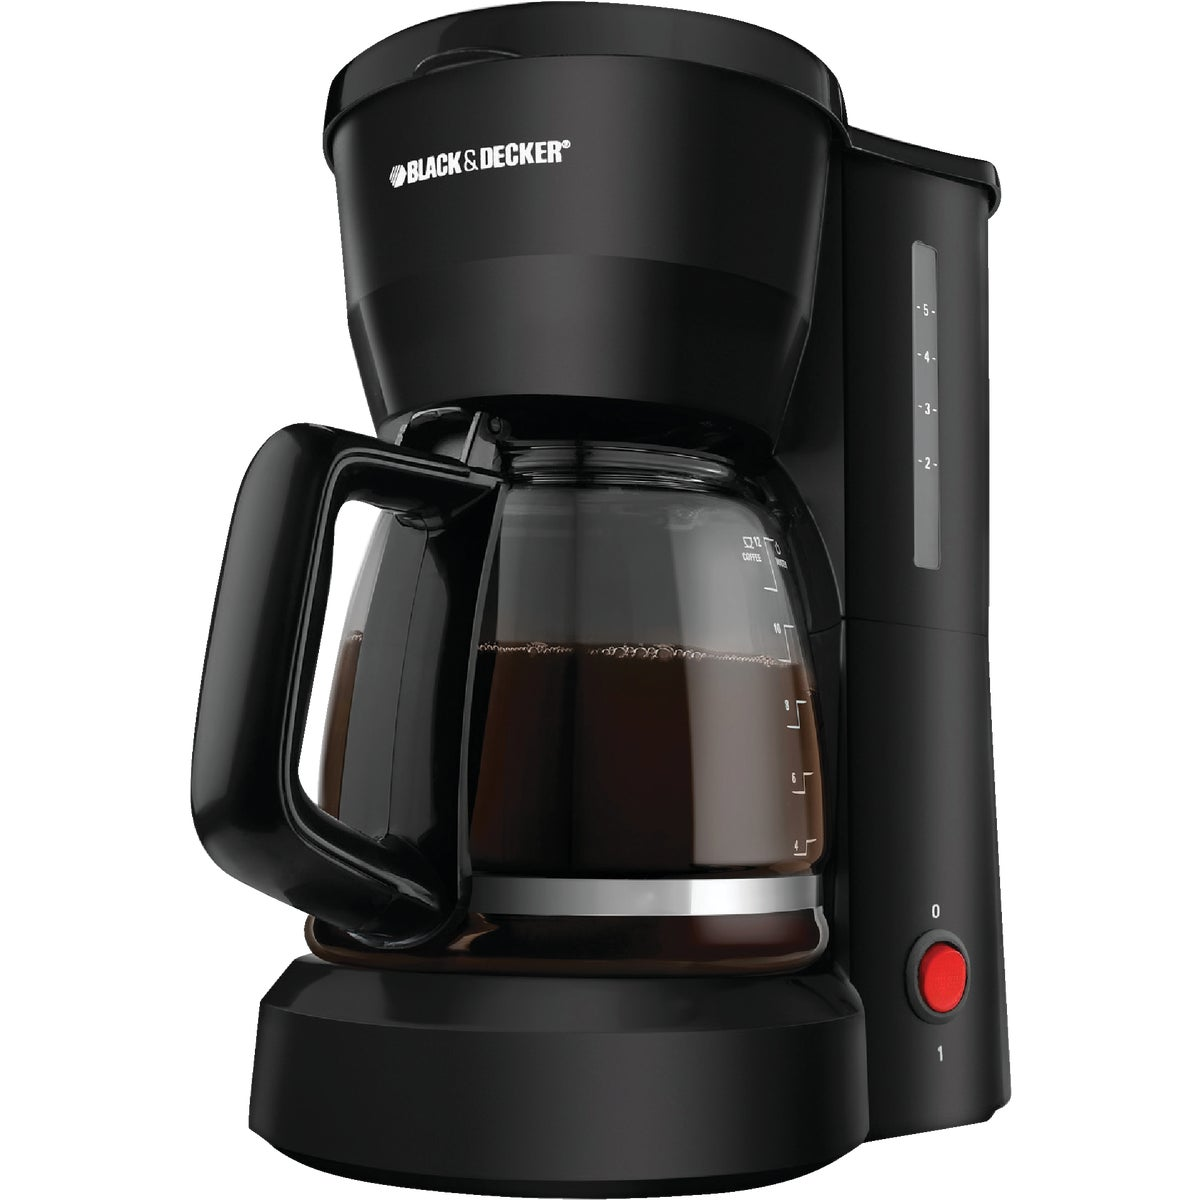 BLK 5-CUP COFFEE MAKER